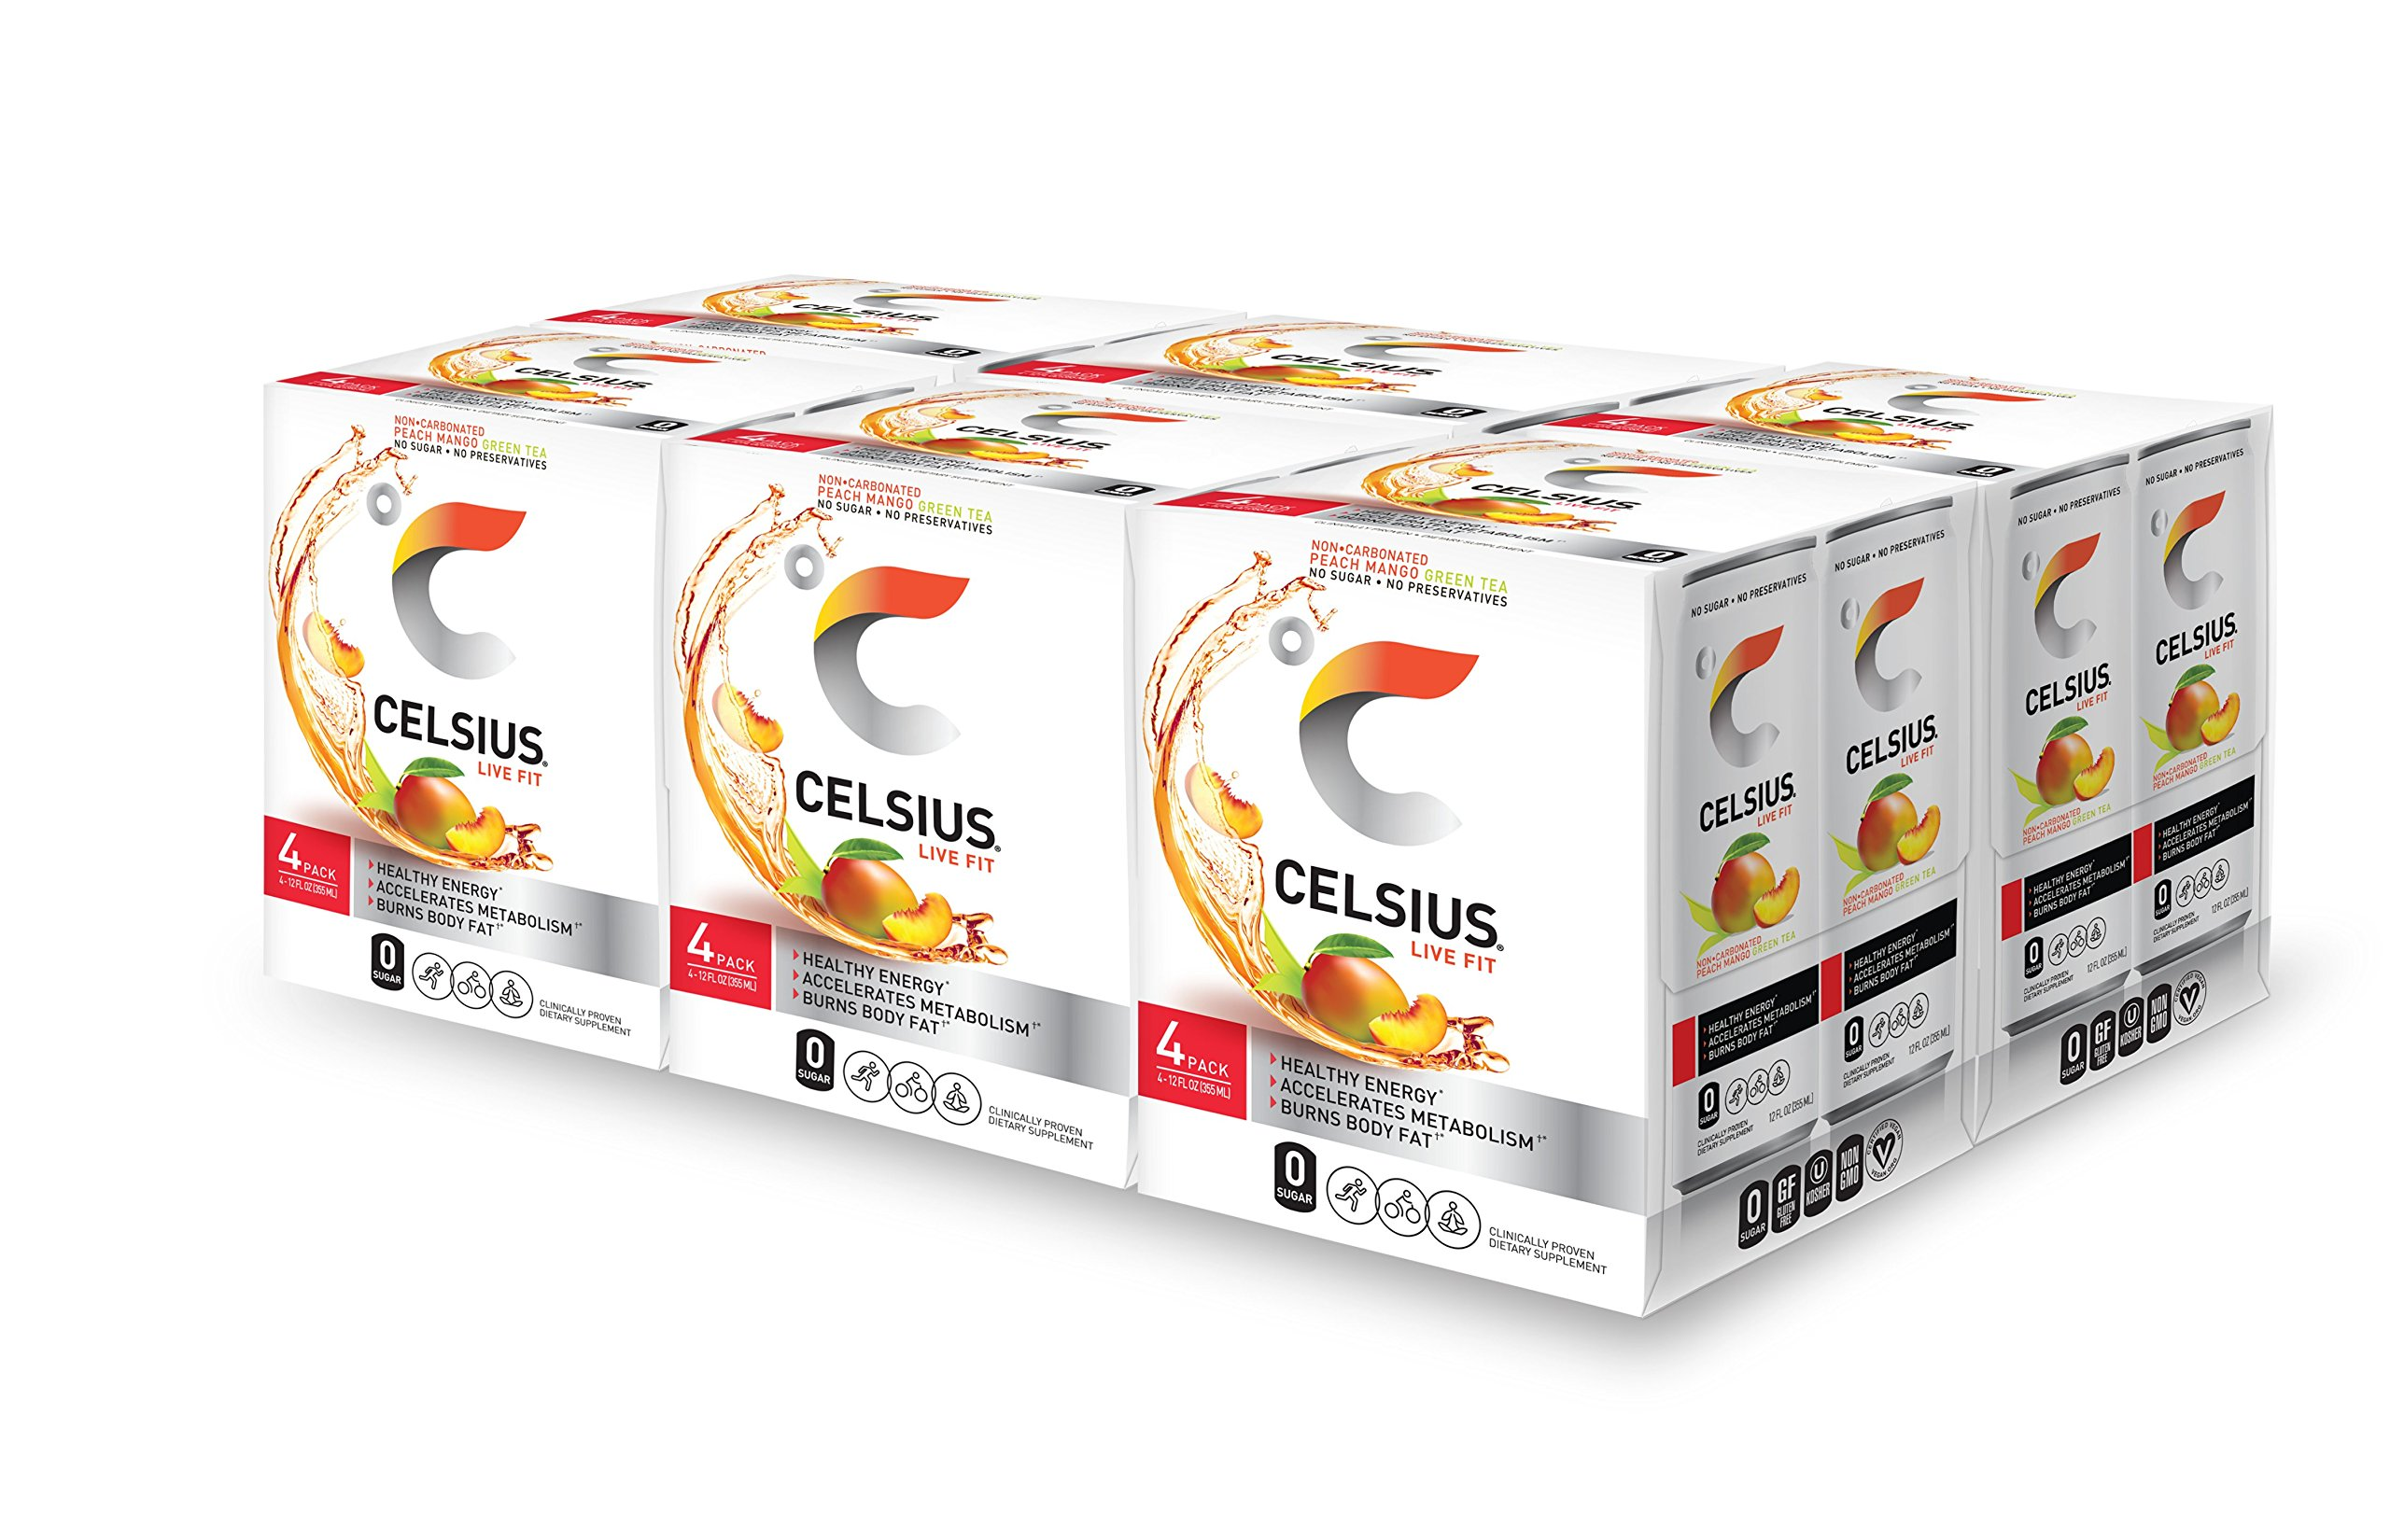 CELSIUS Peach Mango Green Tea Non-Carbonated Fitness Drink, ZERO Sugar, 12oz. Slim Can 4-Packs, 24 Cans Total